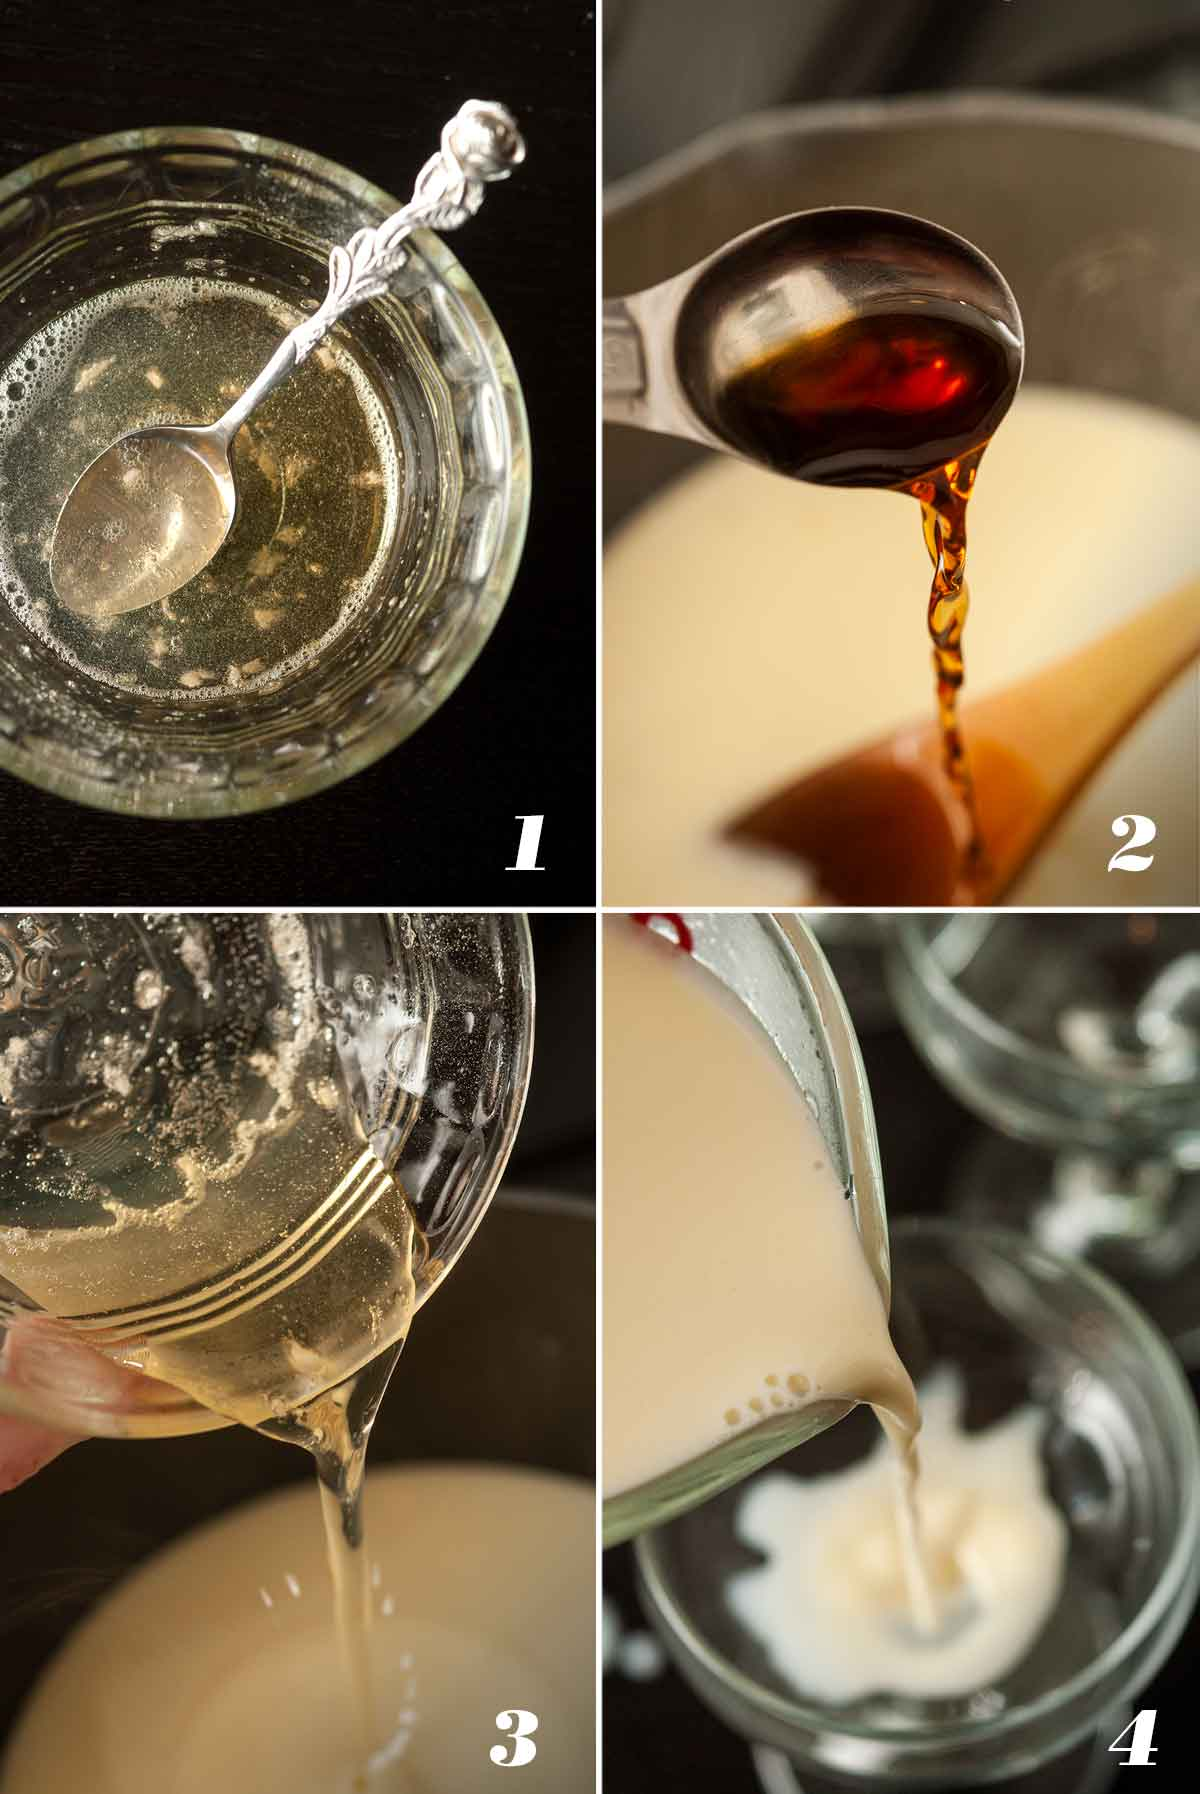 A collage of 4 numbered images showing how to make panna cotta.